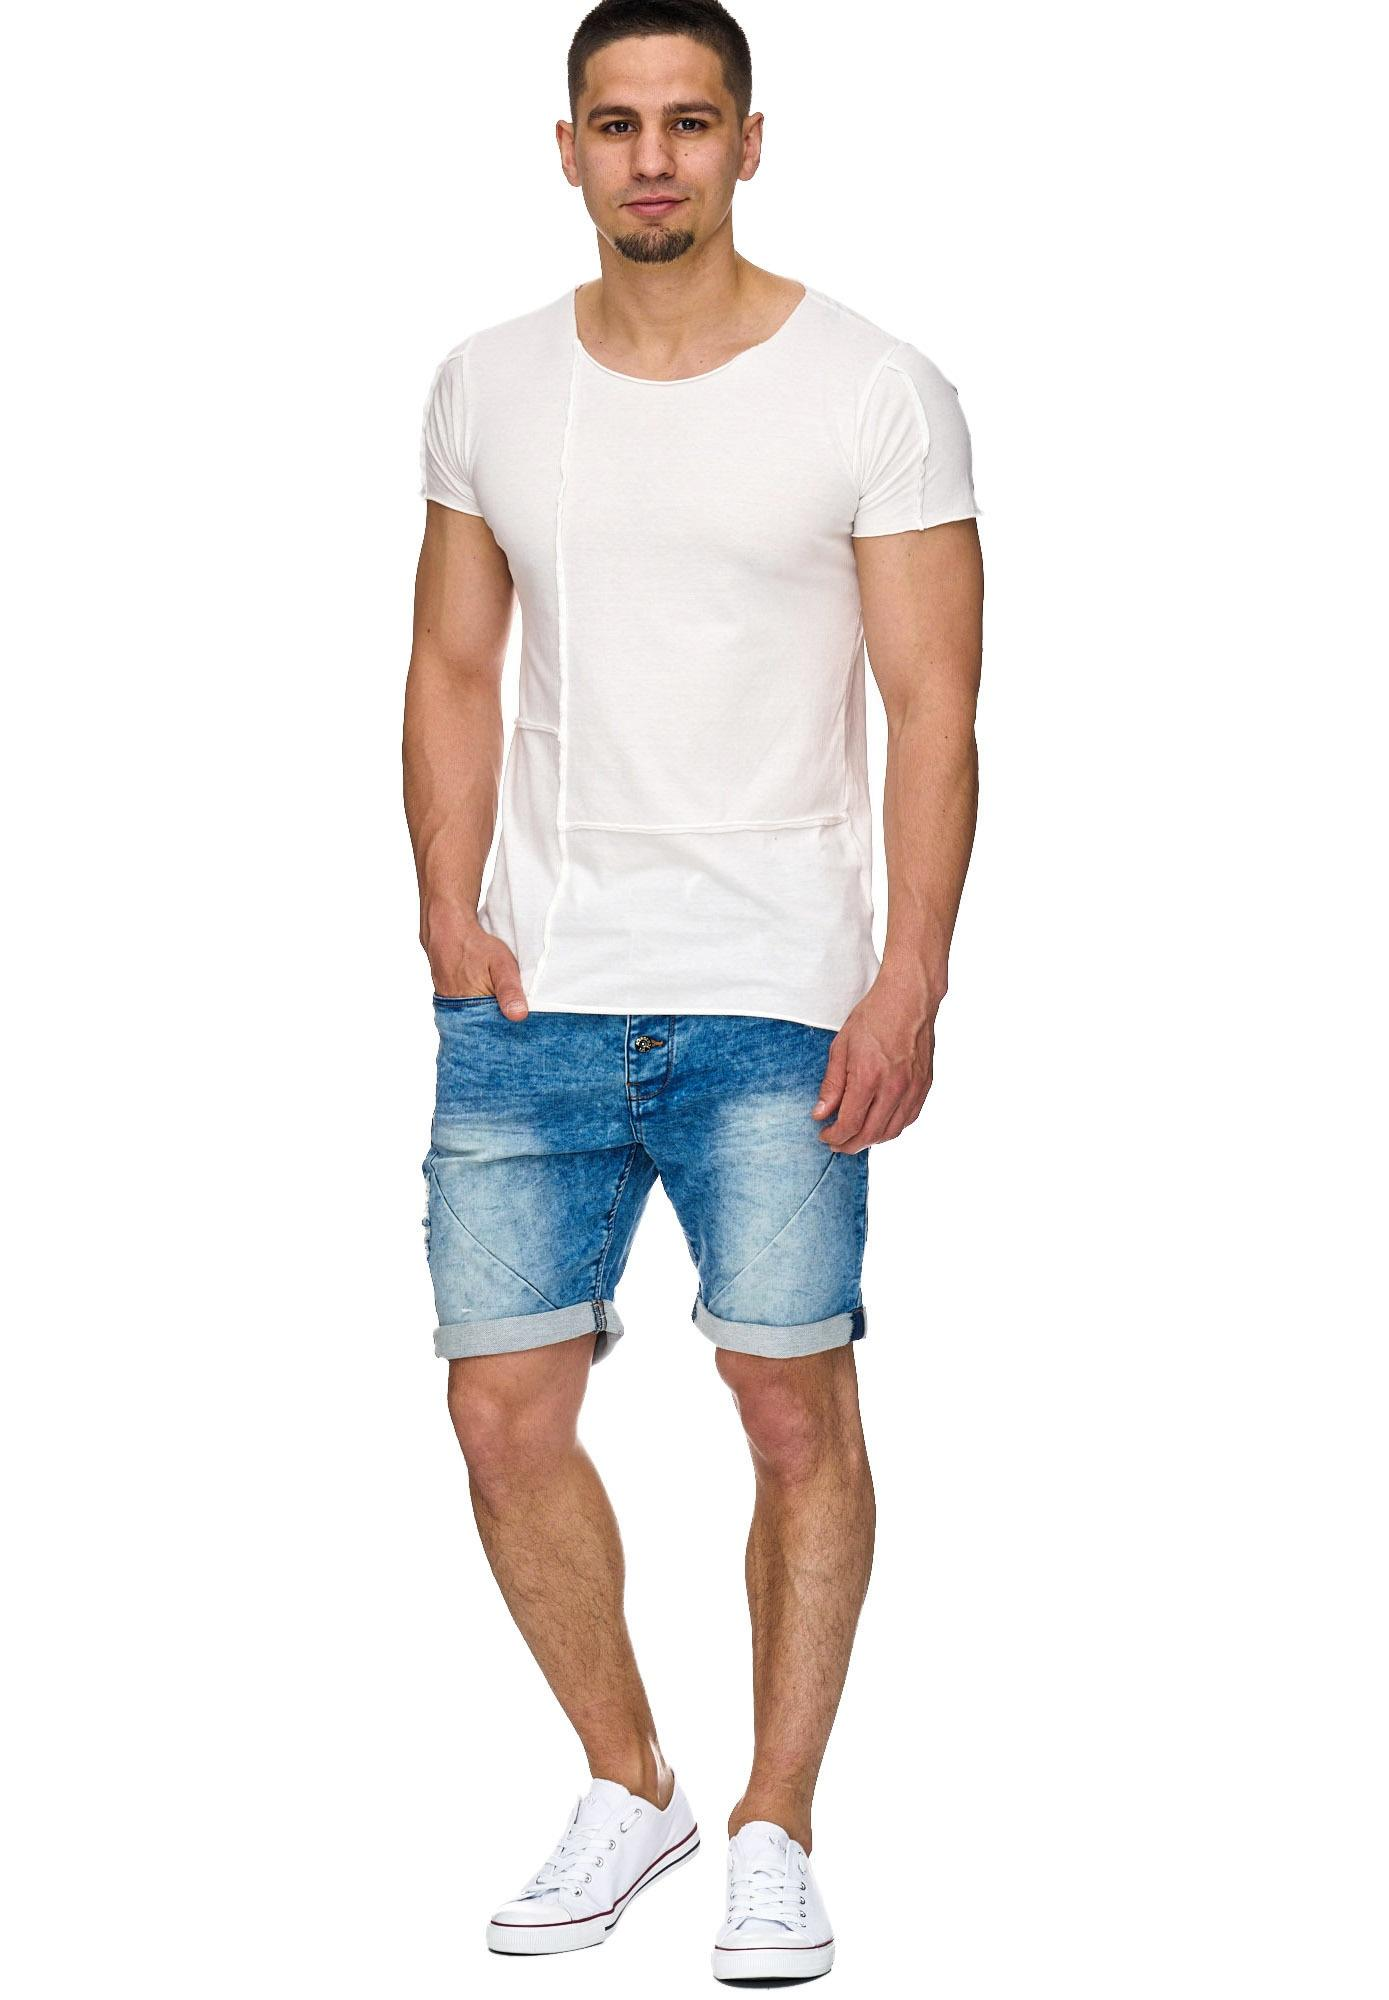 INDICODE JEANS Shorts 'Piano' blue denim